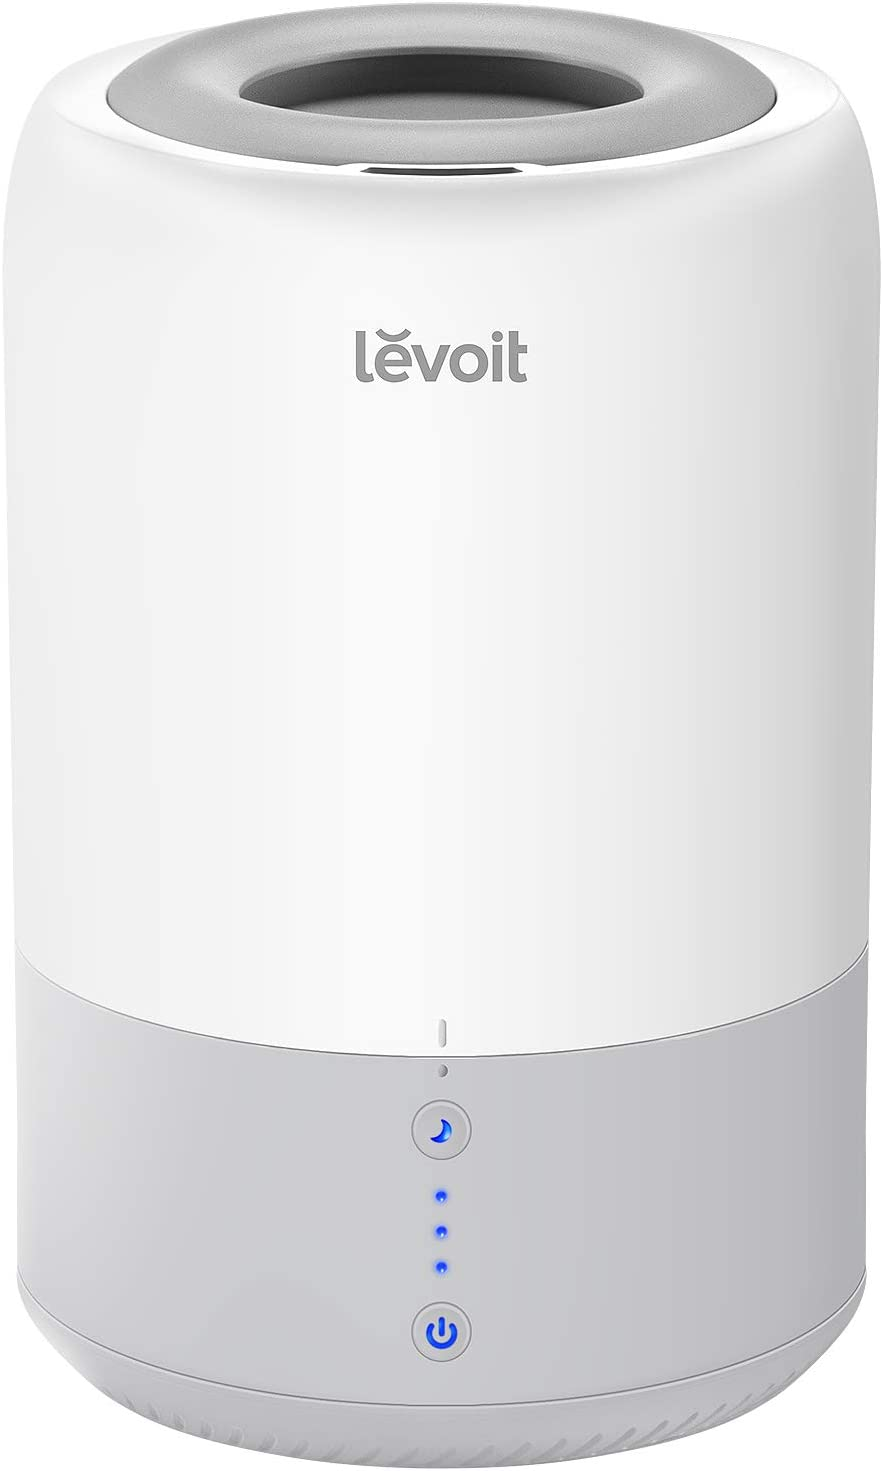 LEVOIT Humidifiers for Bedroom, Cool Mist Air Vaporizer for Babies, Ultrasonic Top Fill Essential Oil Diffuser,Smart Sleep Mode,Auto Shut Off, Quiet, 1.8L, Gray